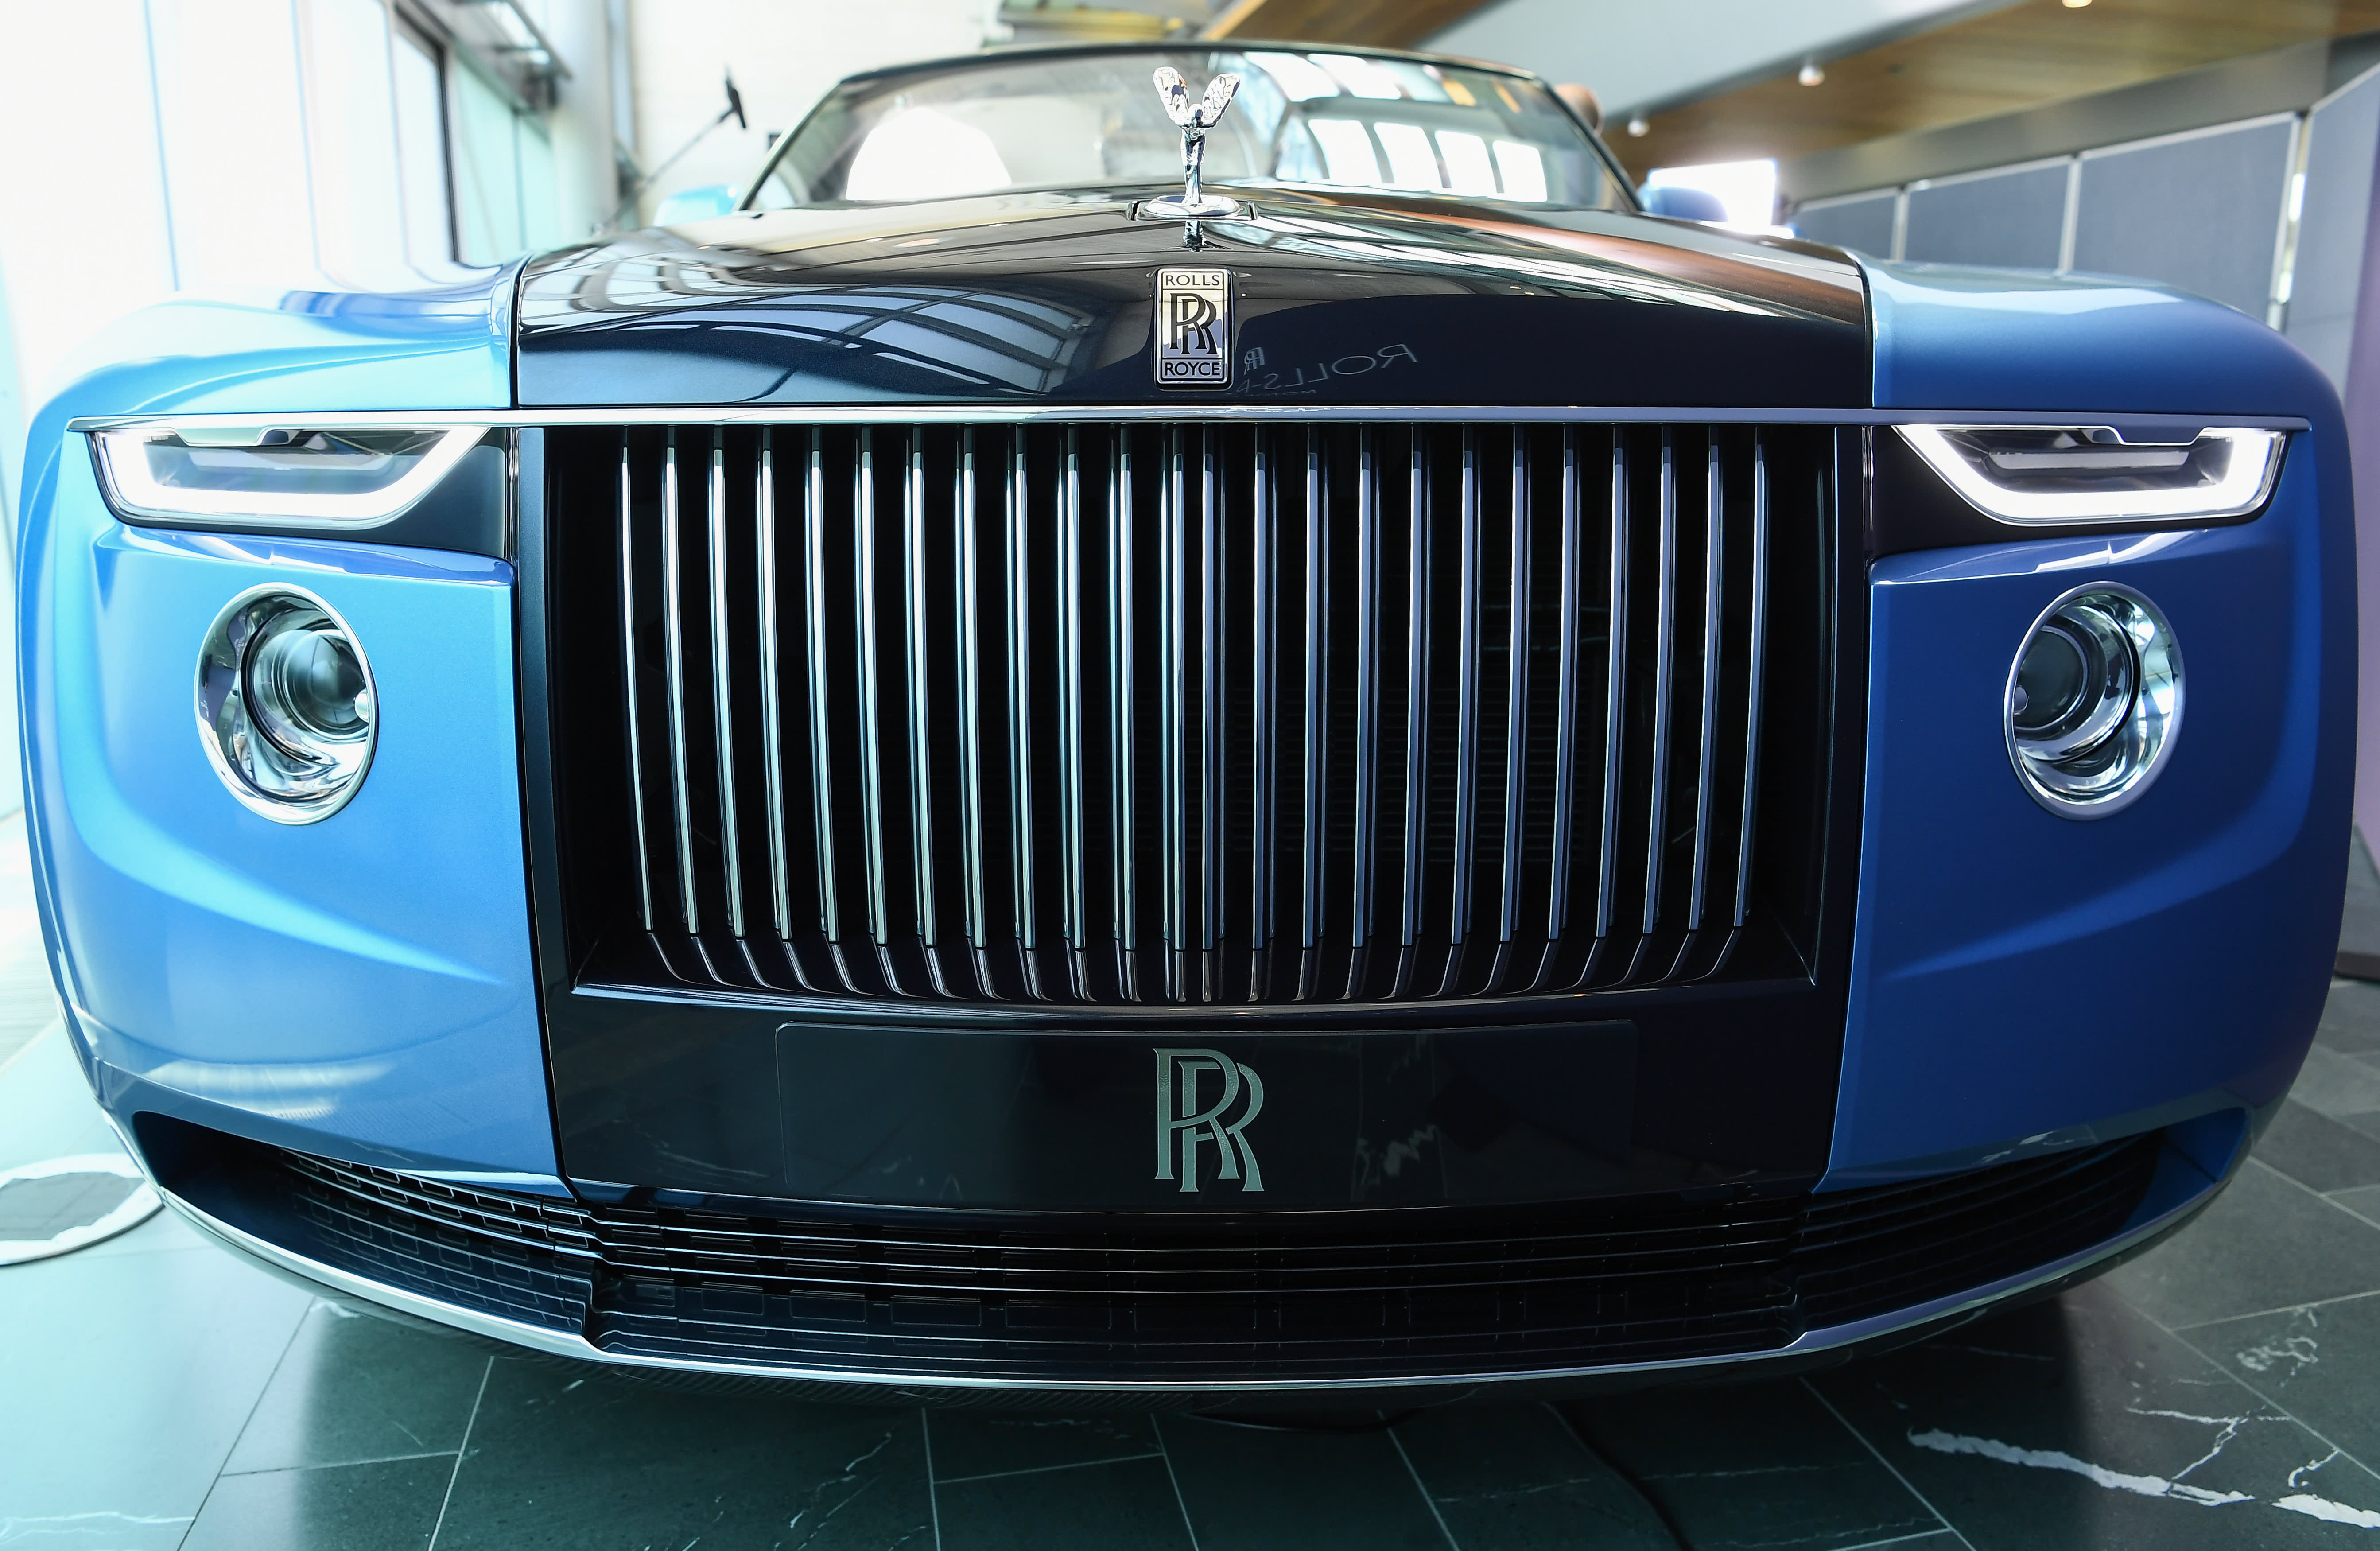 Rolls-Royce introduces the 'most enthusiastic' car it's ever produced thumbnail